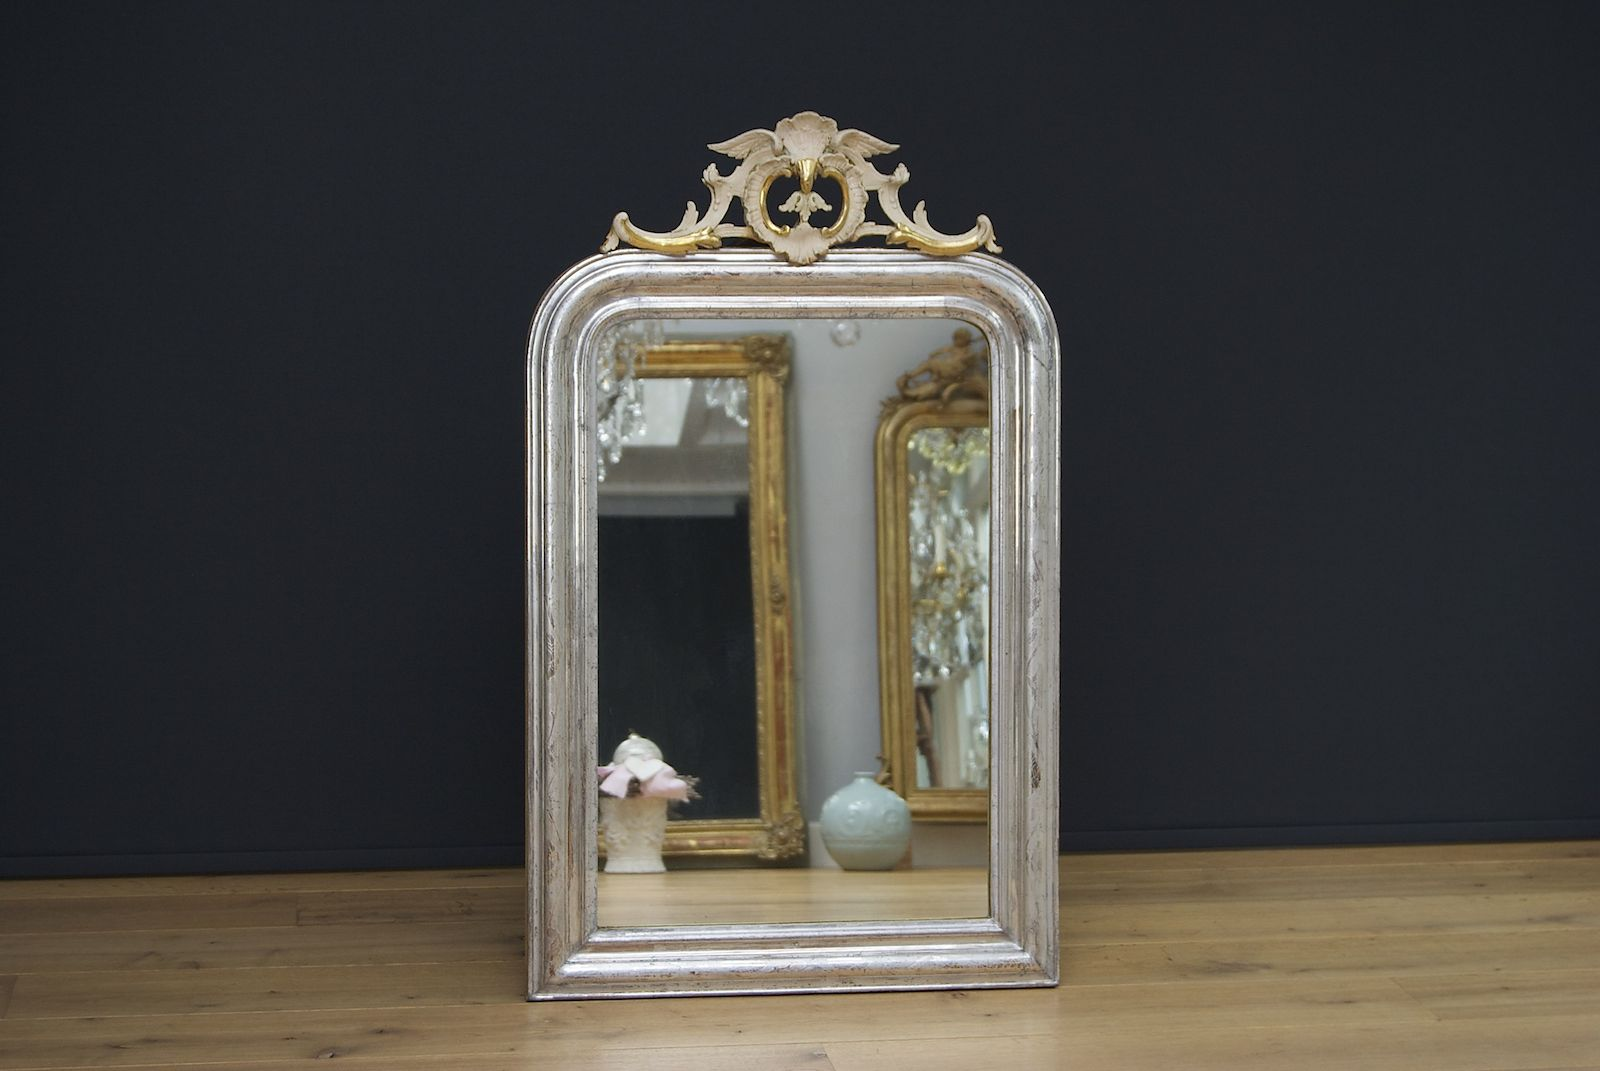 French mirror with a pretty crest